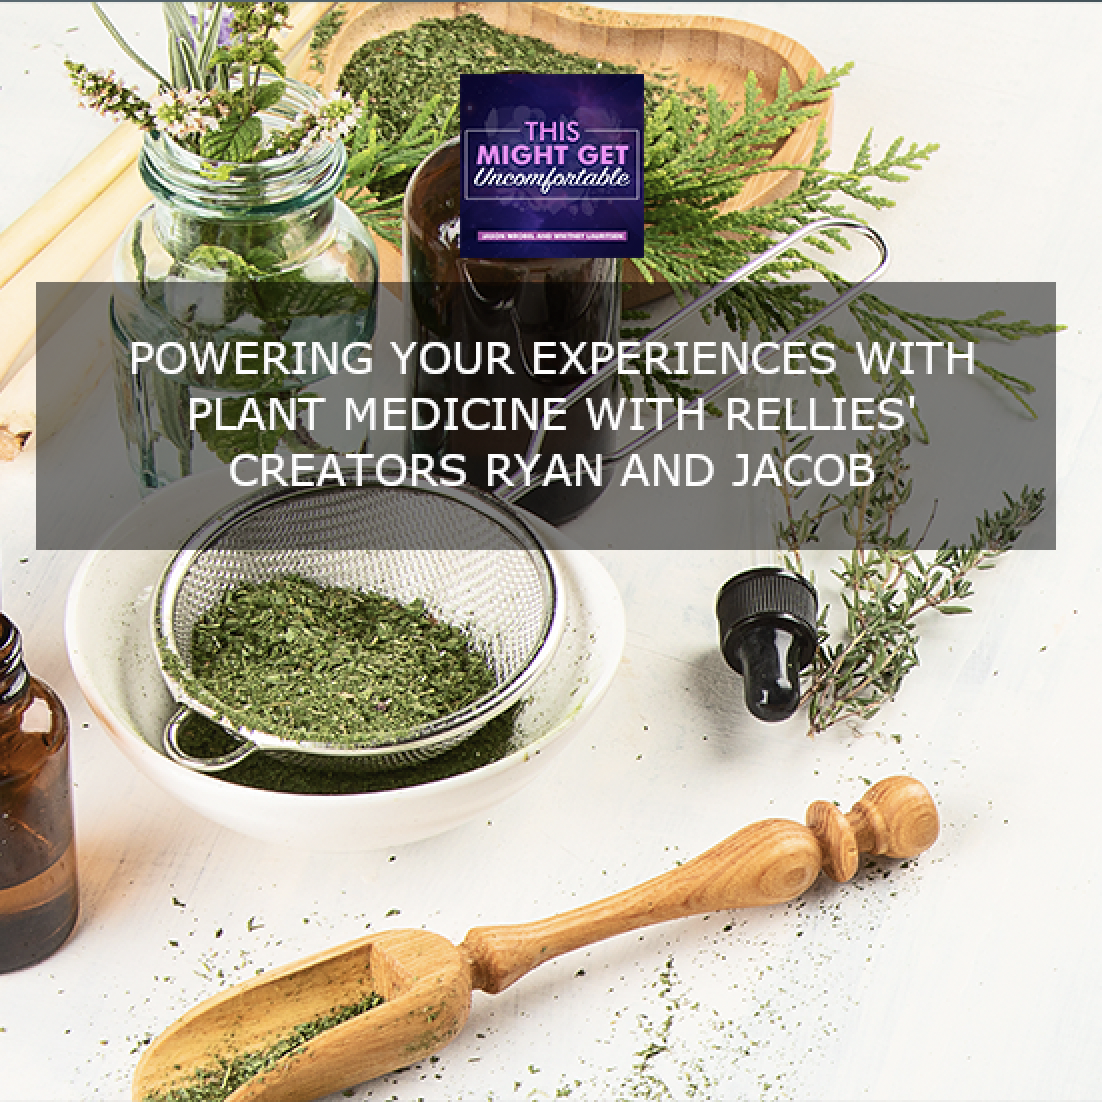 Powering Your Experiences With Plant Medicine With Rellies' Creators Ryan And Jacob